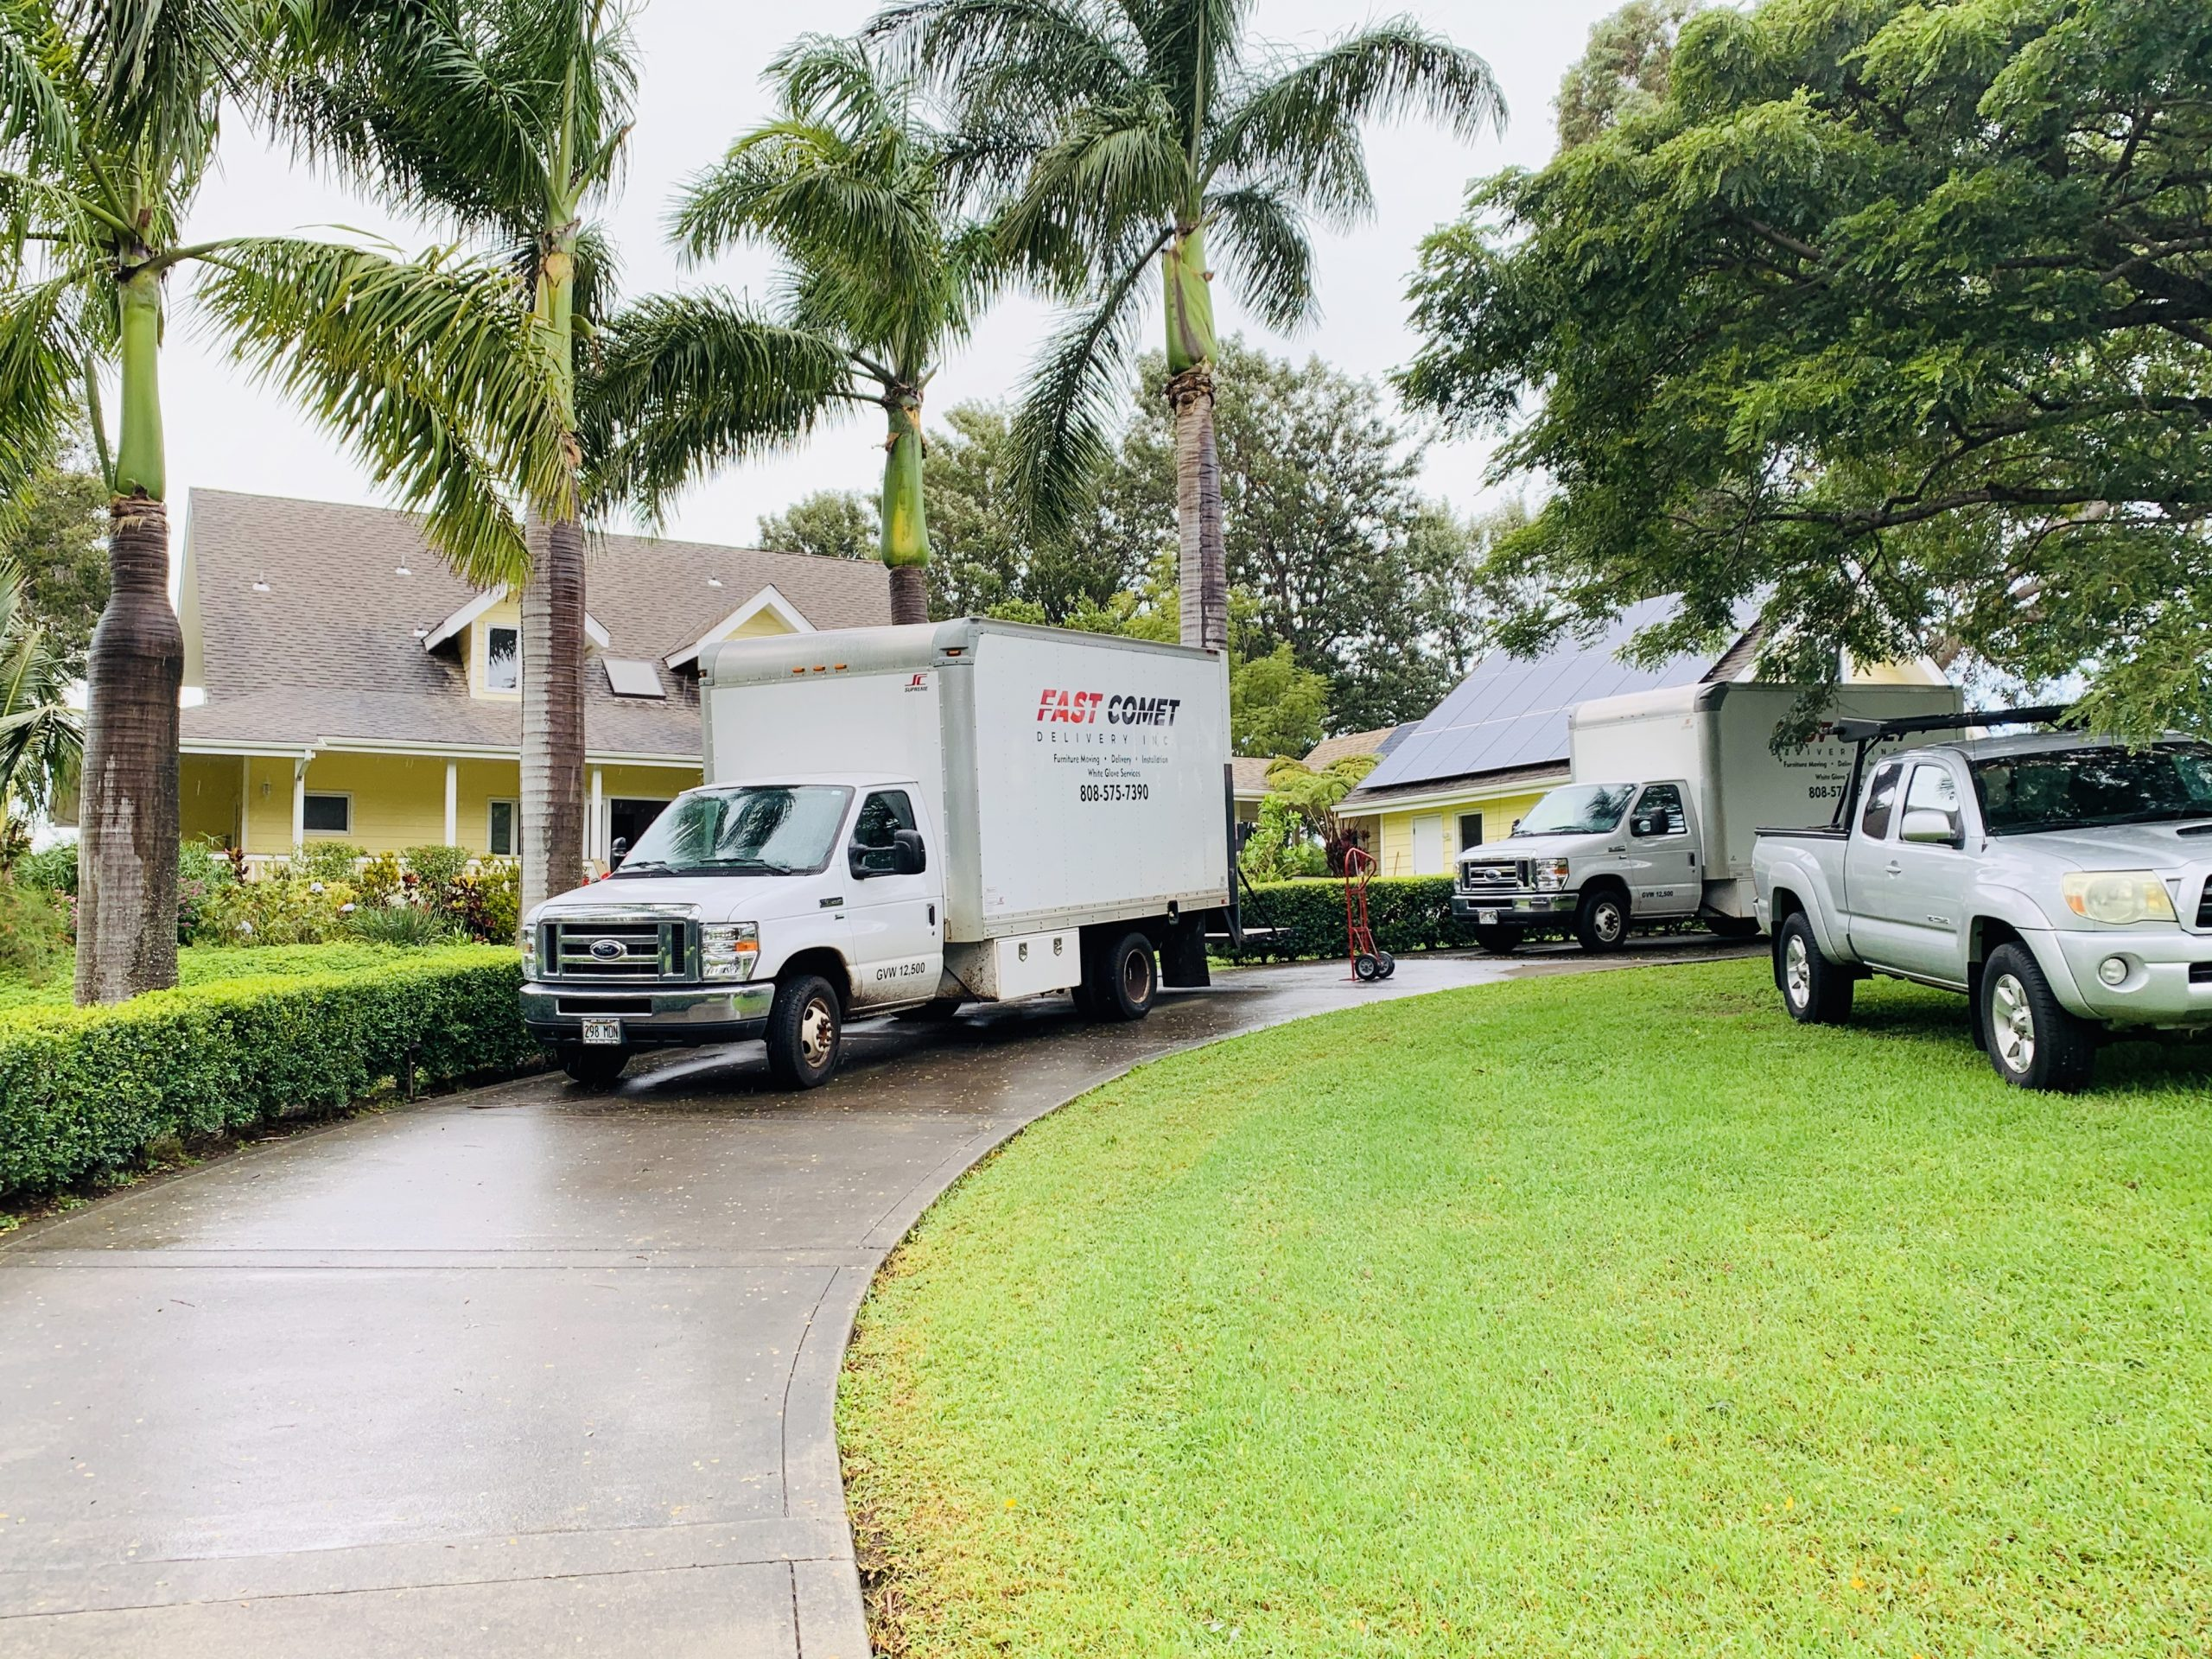 Fast Comet Delivery Truck 2 - Maui Hawaii